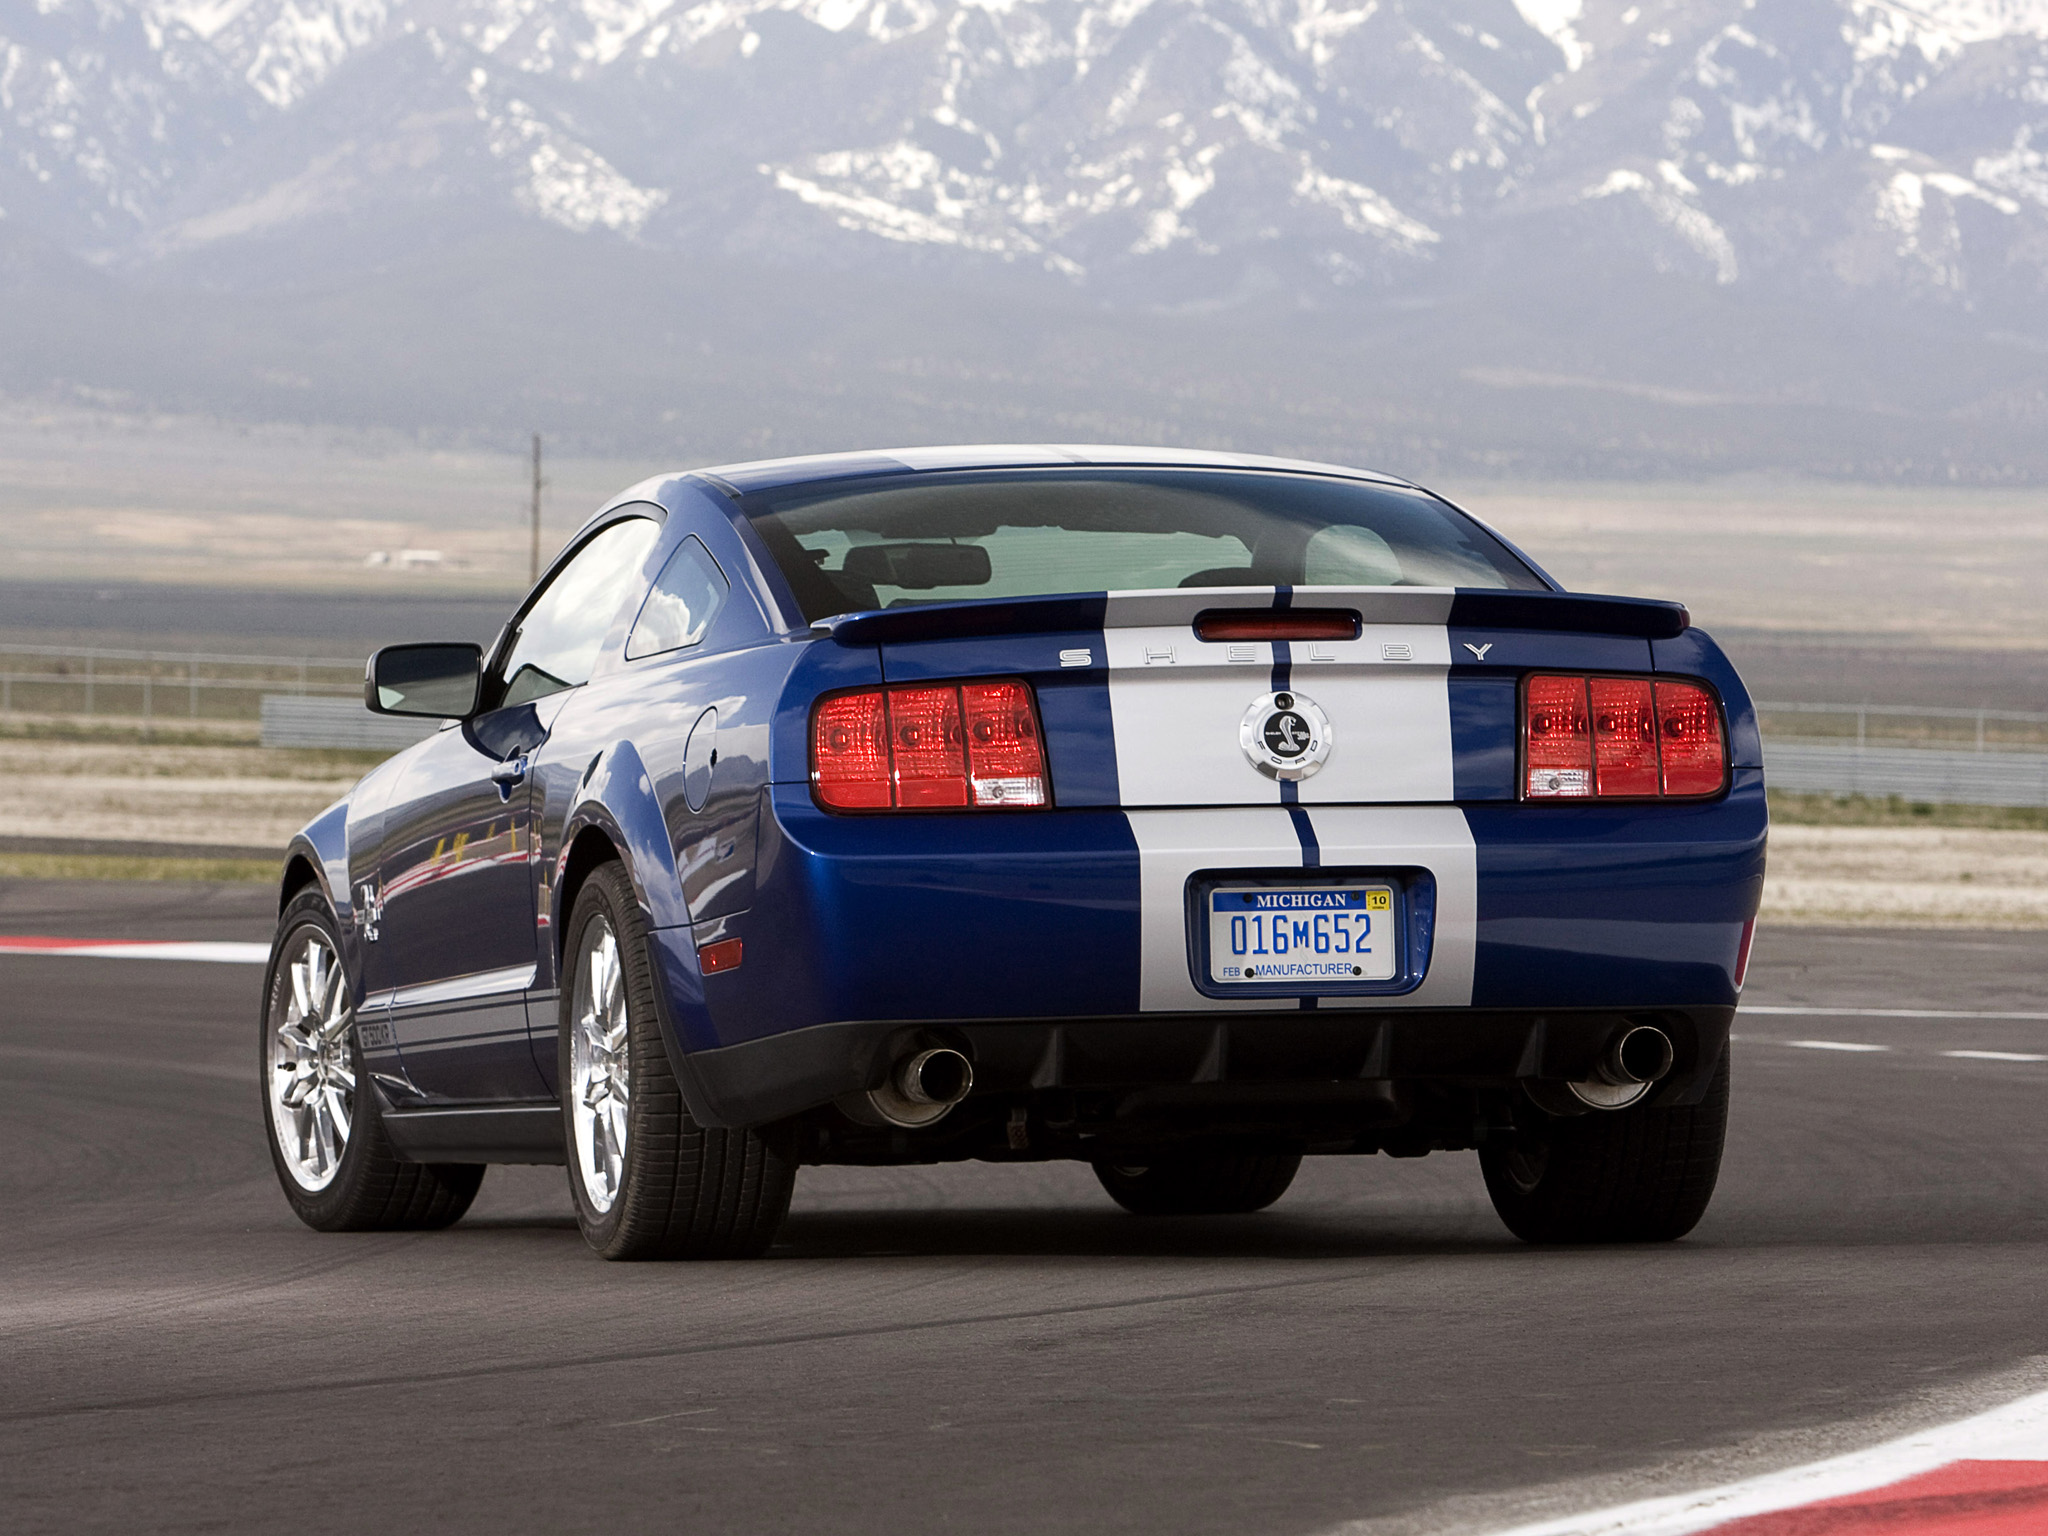 2008 shelby gt500 kr gt500 ford mustang muscle classic dw wallpaper 2048x1536 96604. Black Bedroom Furniture Sets. Home Design Ideas